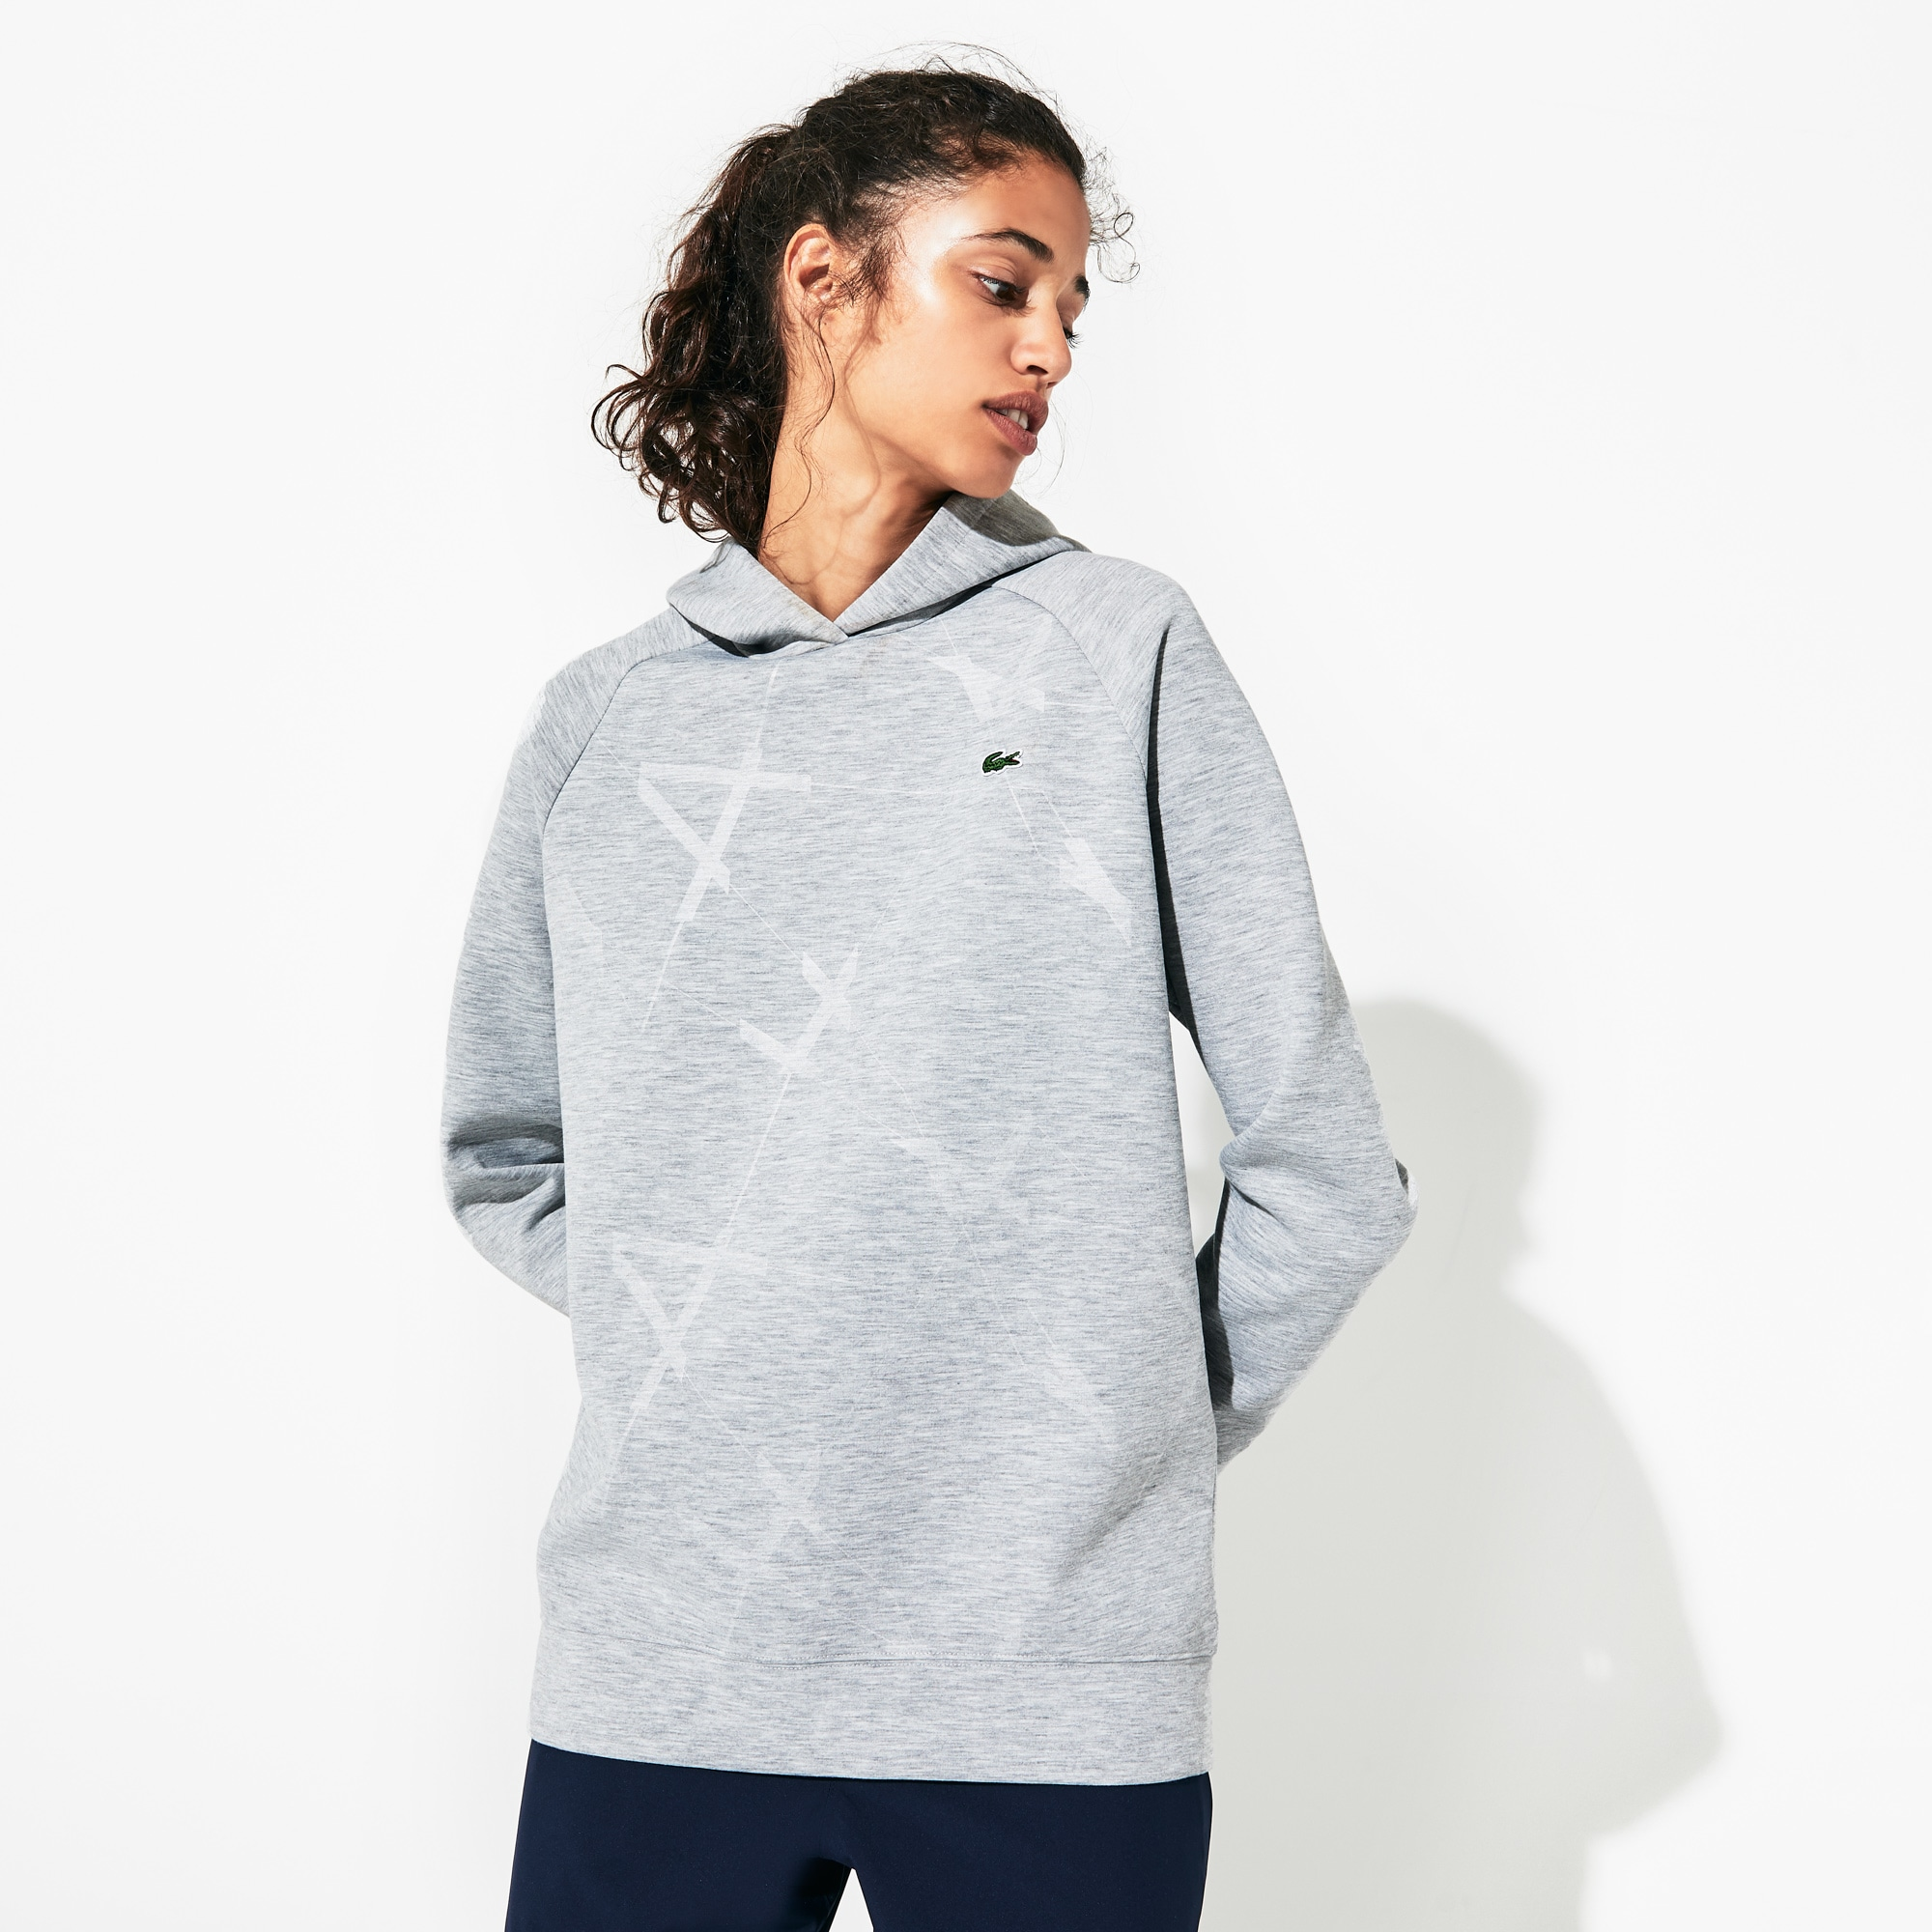 Women's SPORT Printed Fleece Tennis Sweatshirt